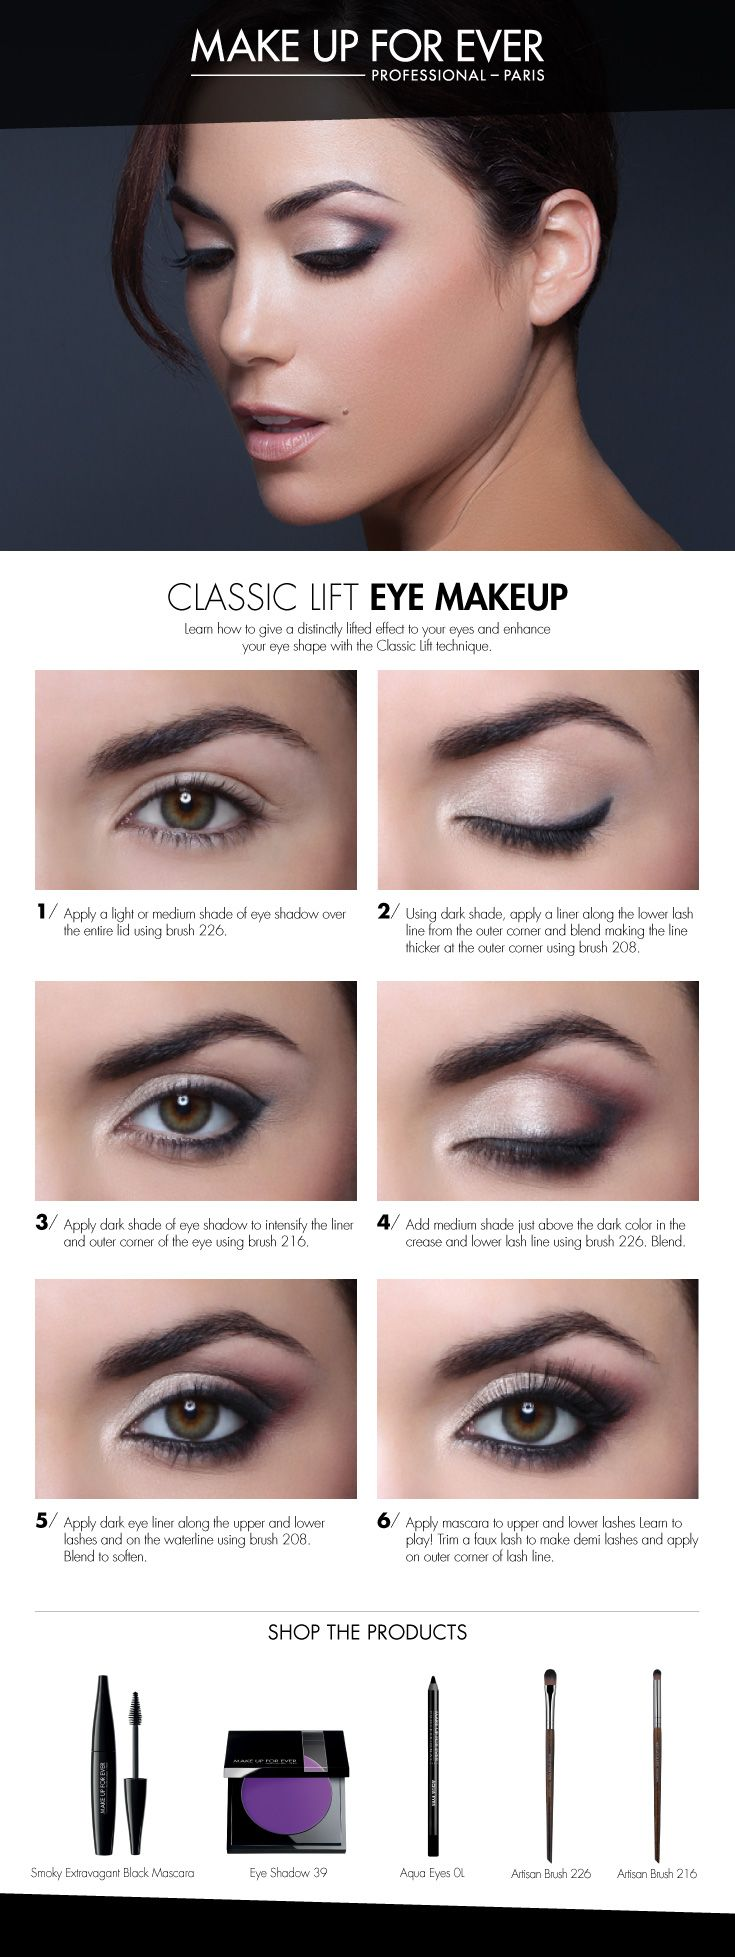 Classic Lift Eye Makeup Gives A Distinctly Lifted Look To Your Eyes #howto